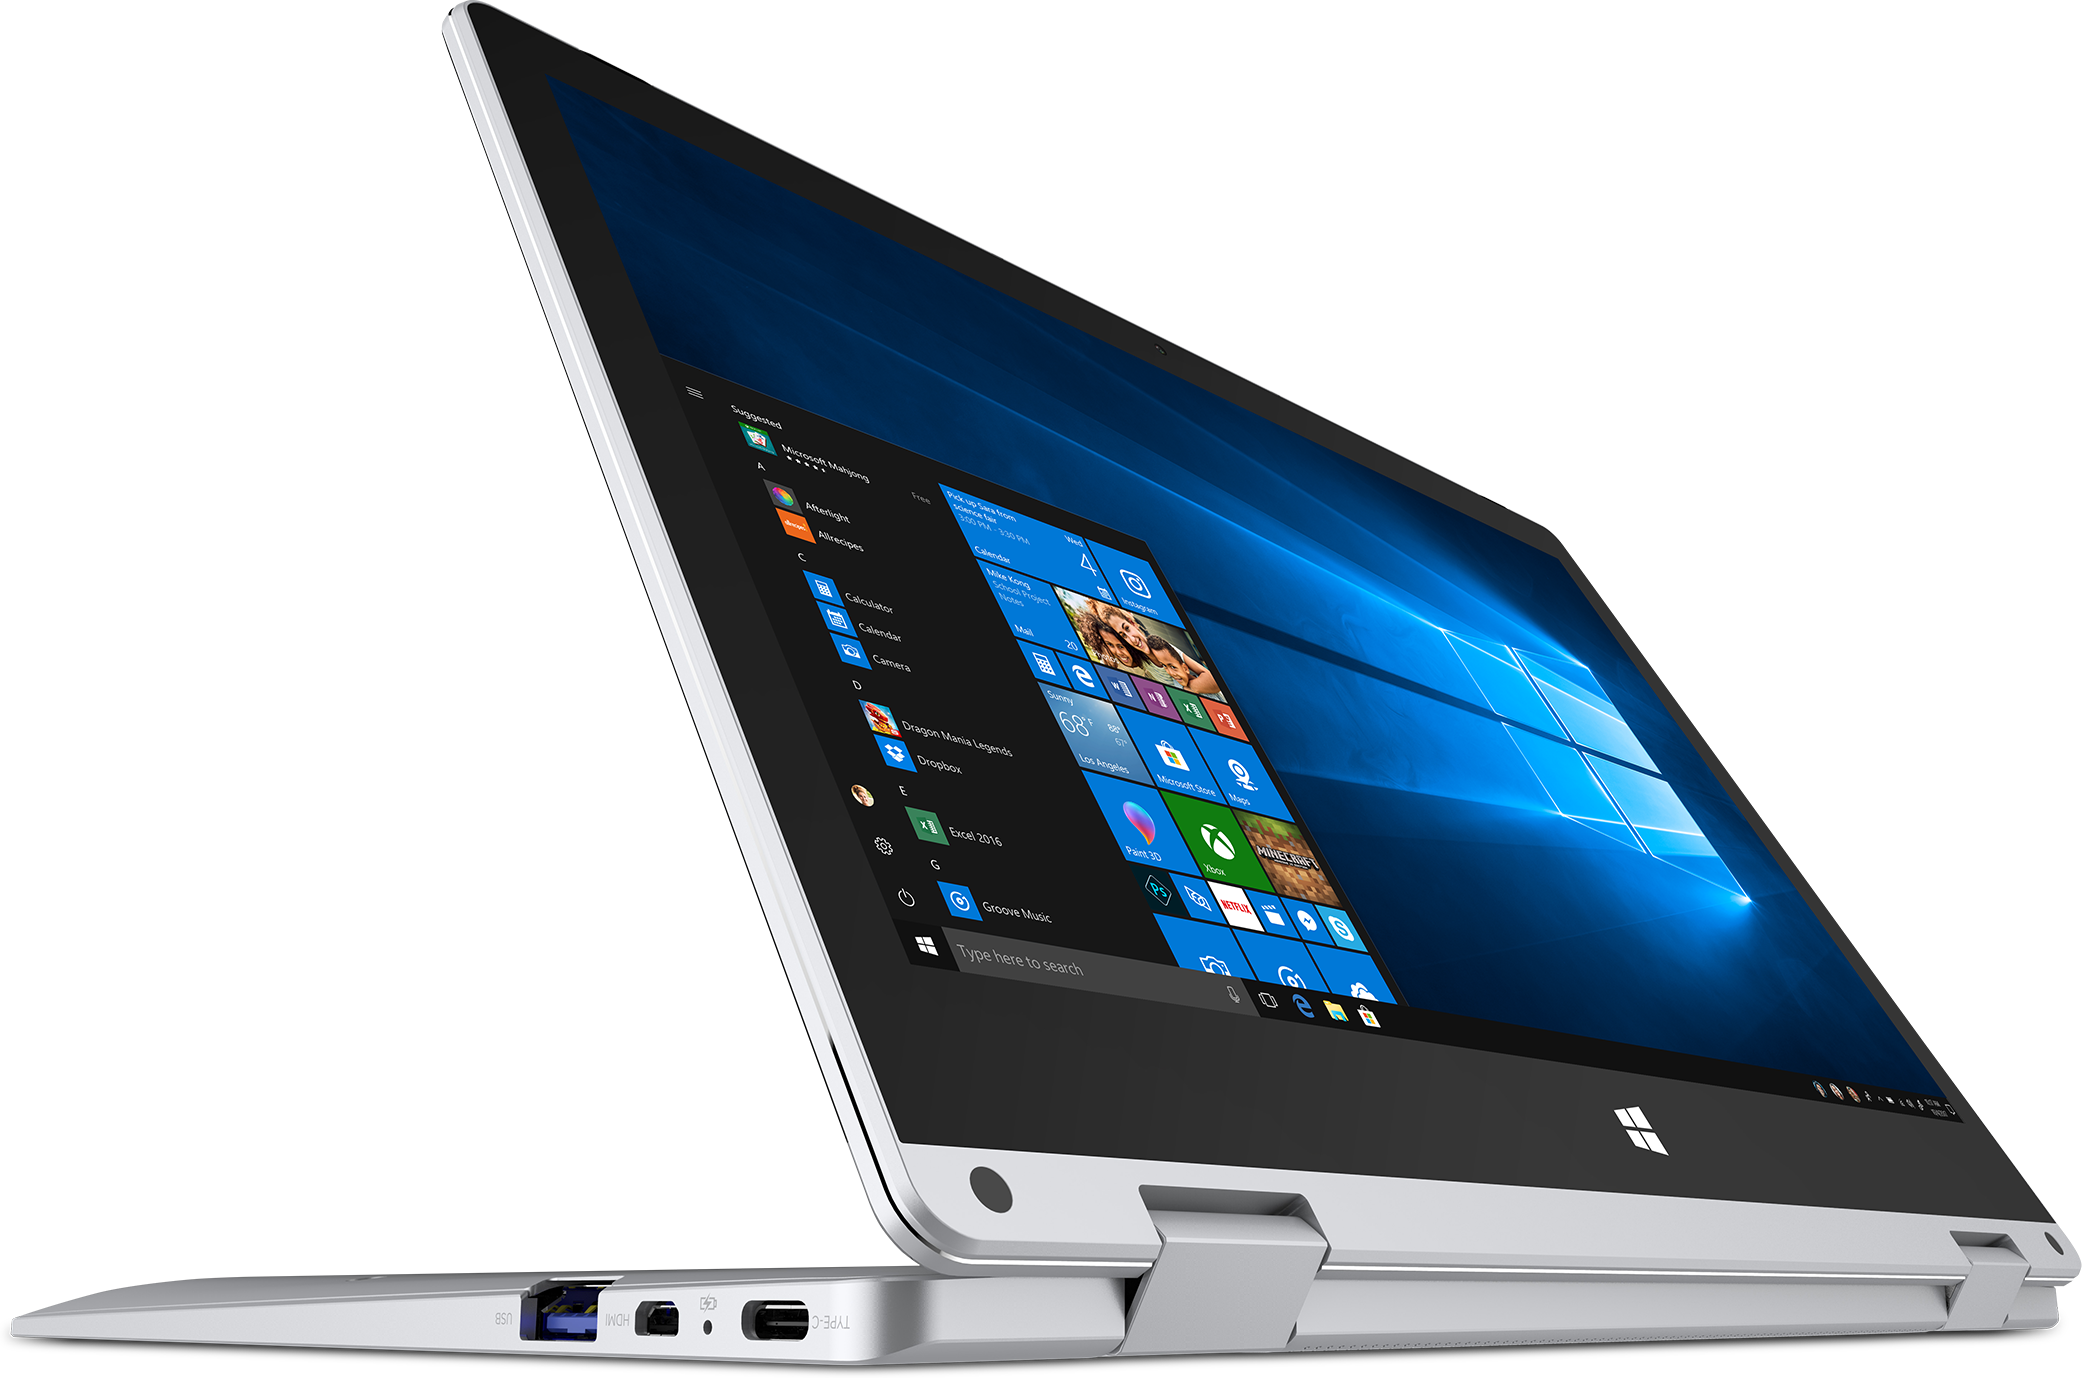 Angled side view of the Primebook in tablet mode